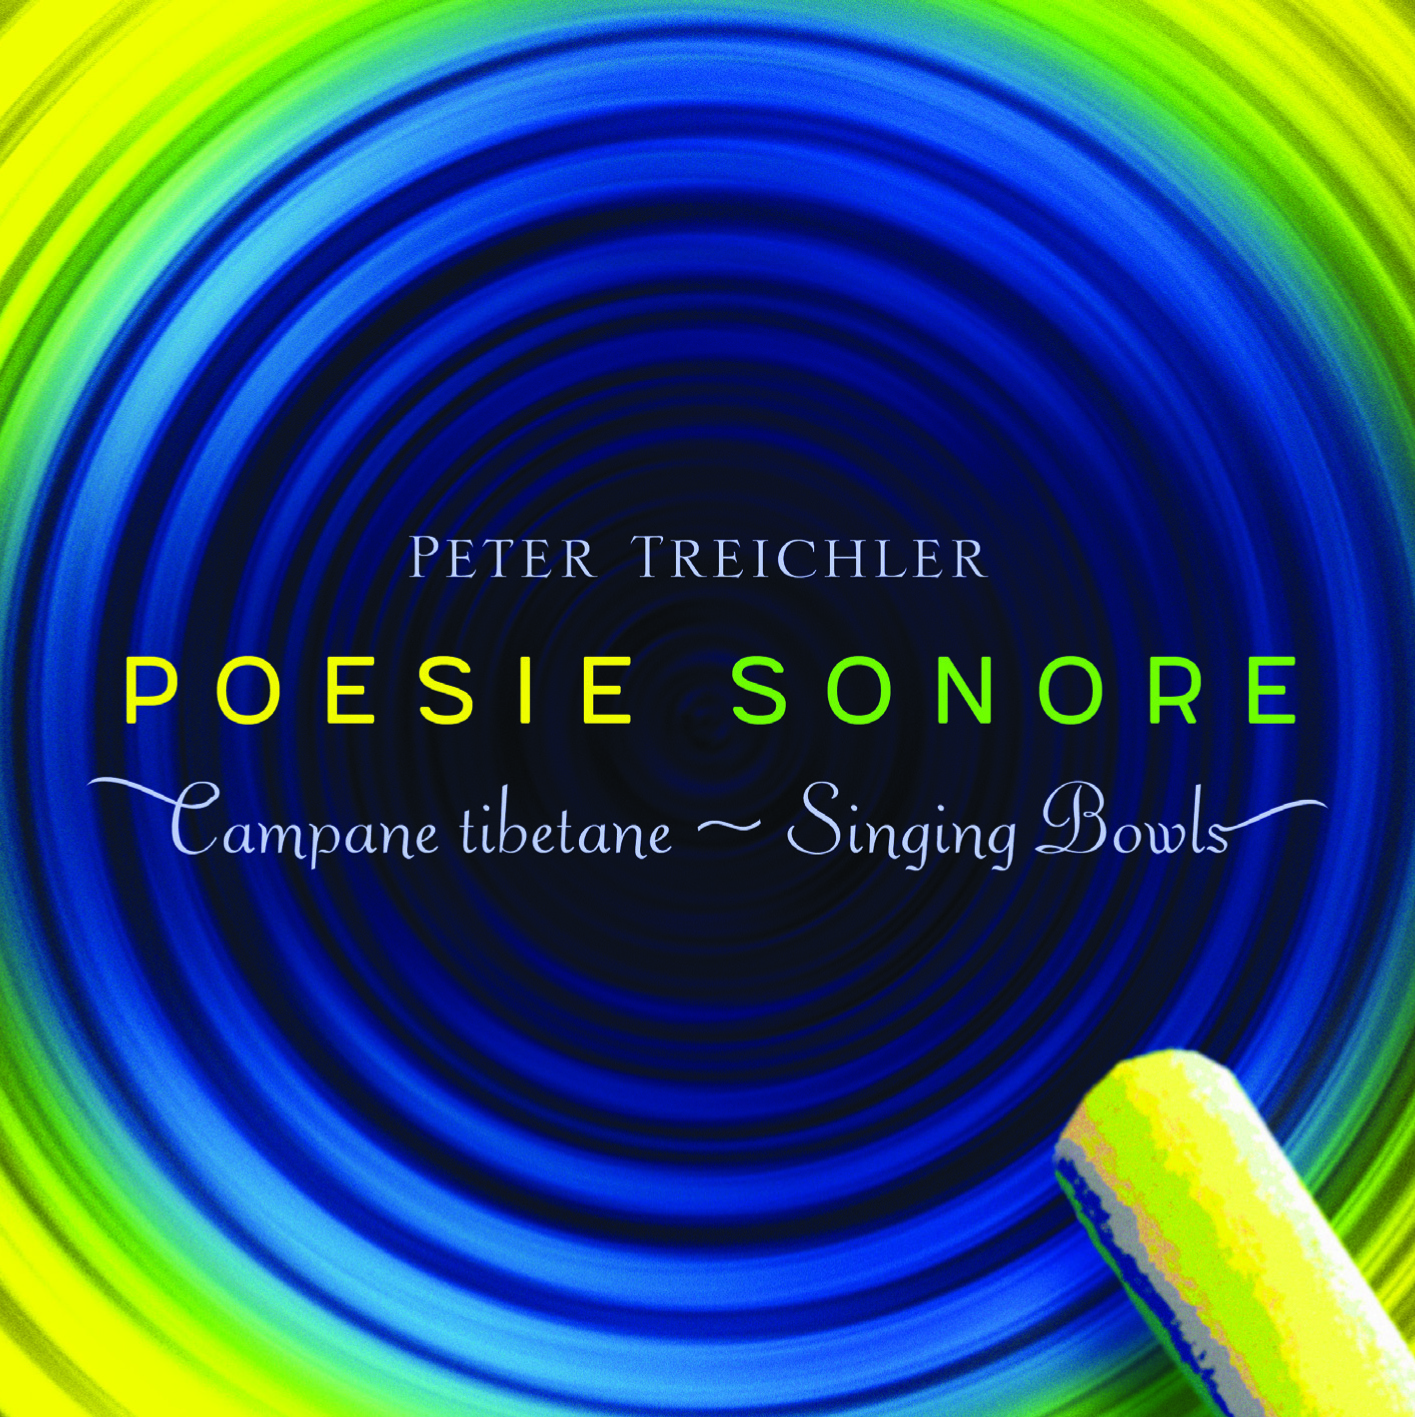 POESIE SONORE cover – 72164T